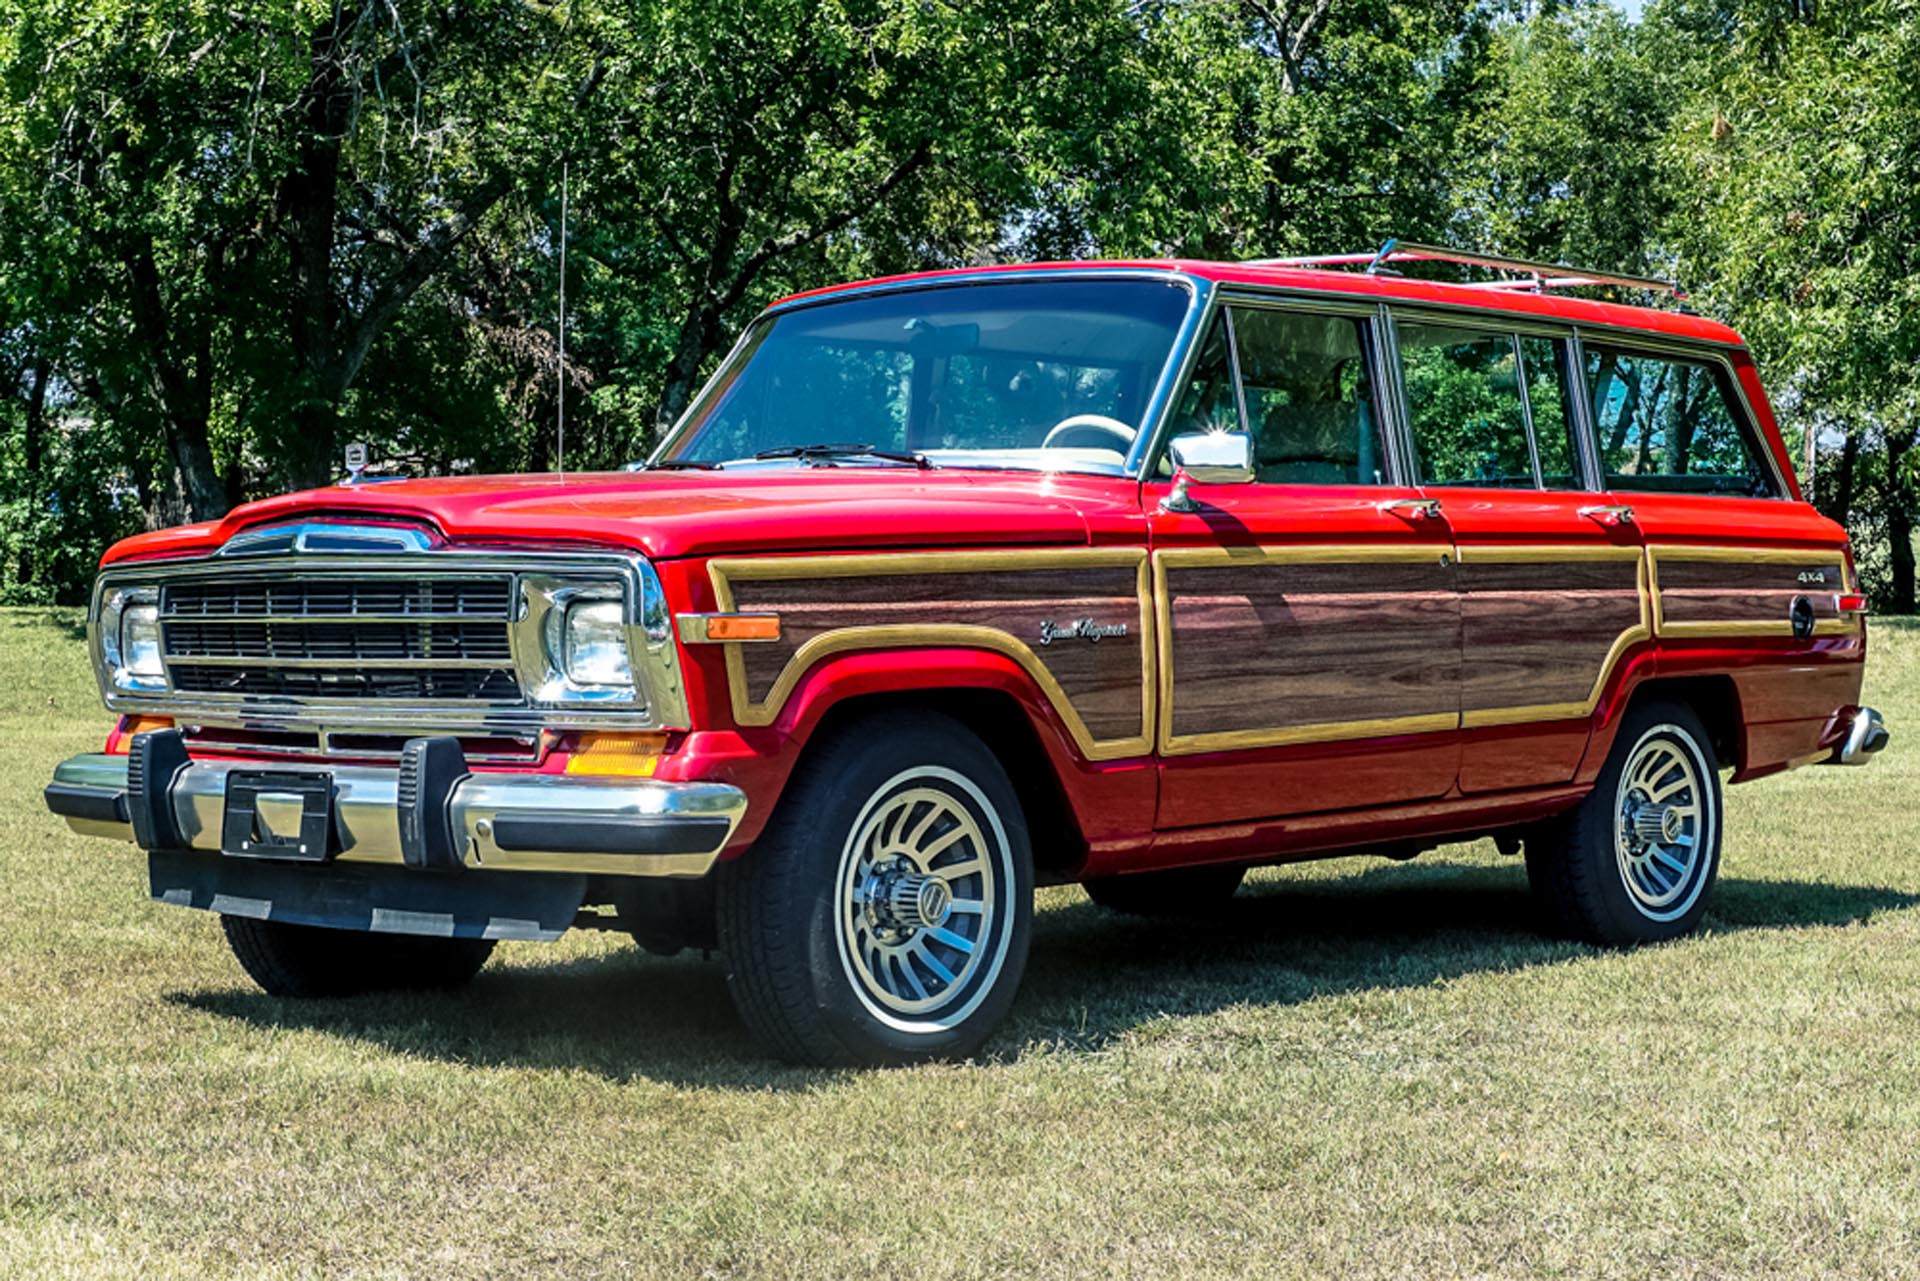 1989 Jeep Grand Wagoneer With A Supercharged Hellcat V8 Engine Swap Depot